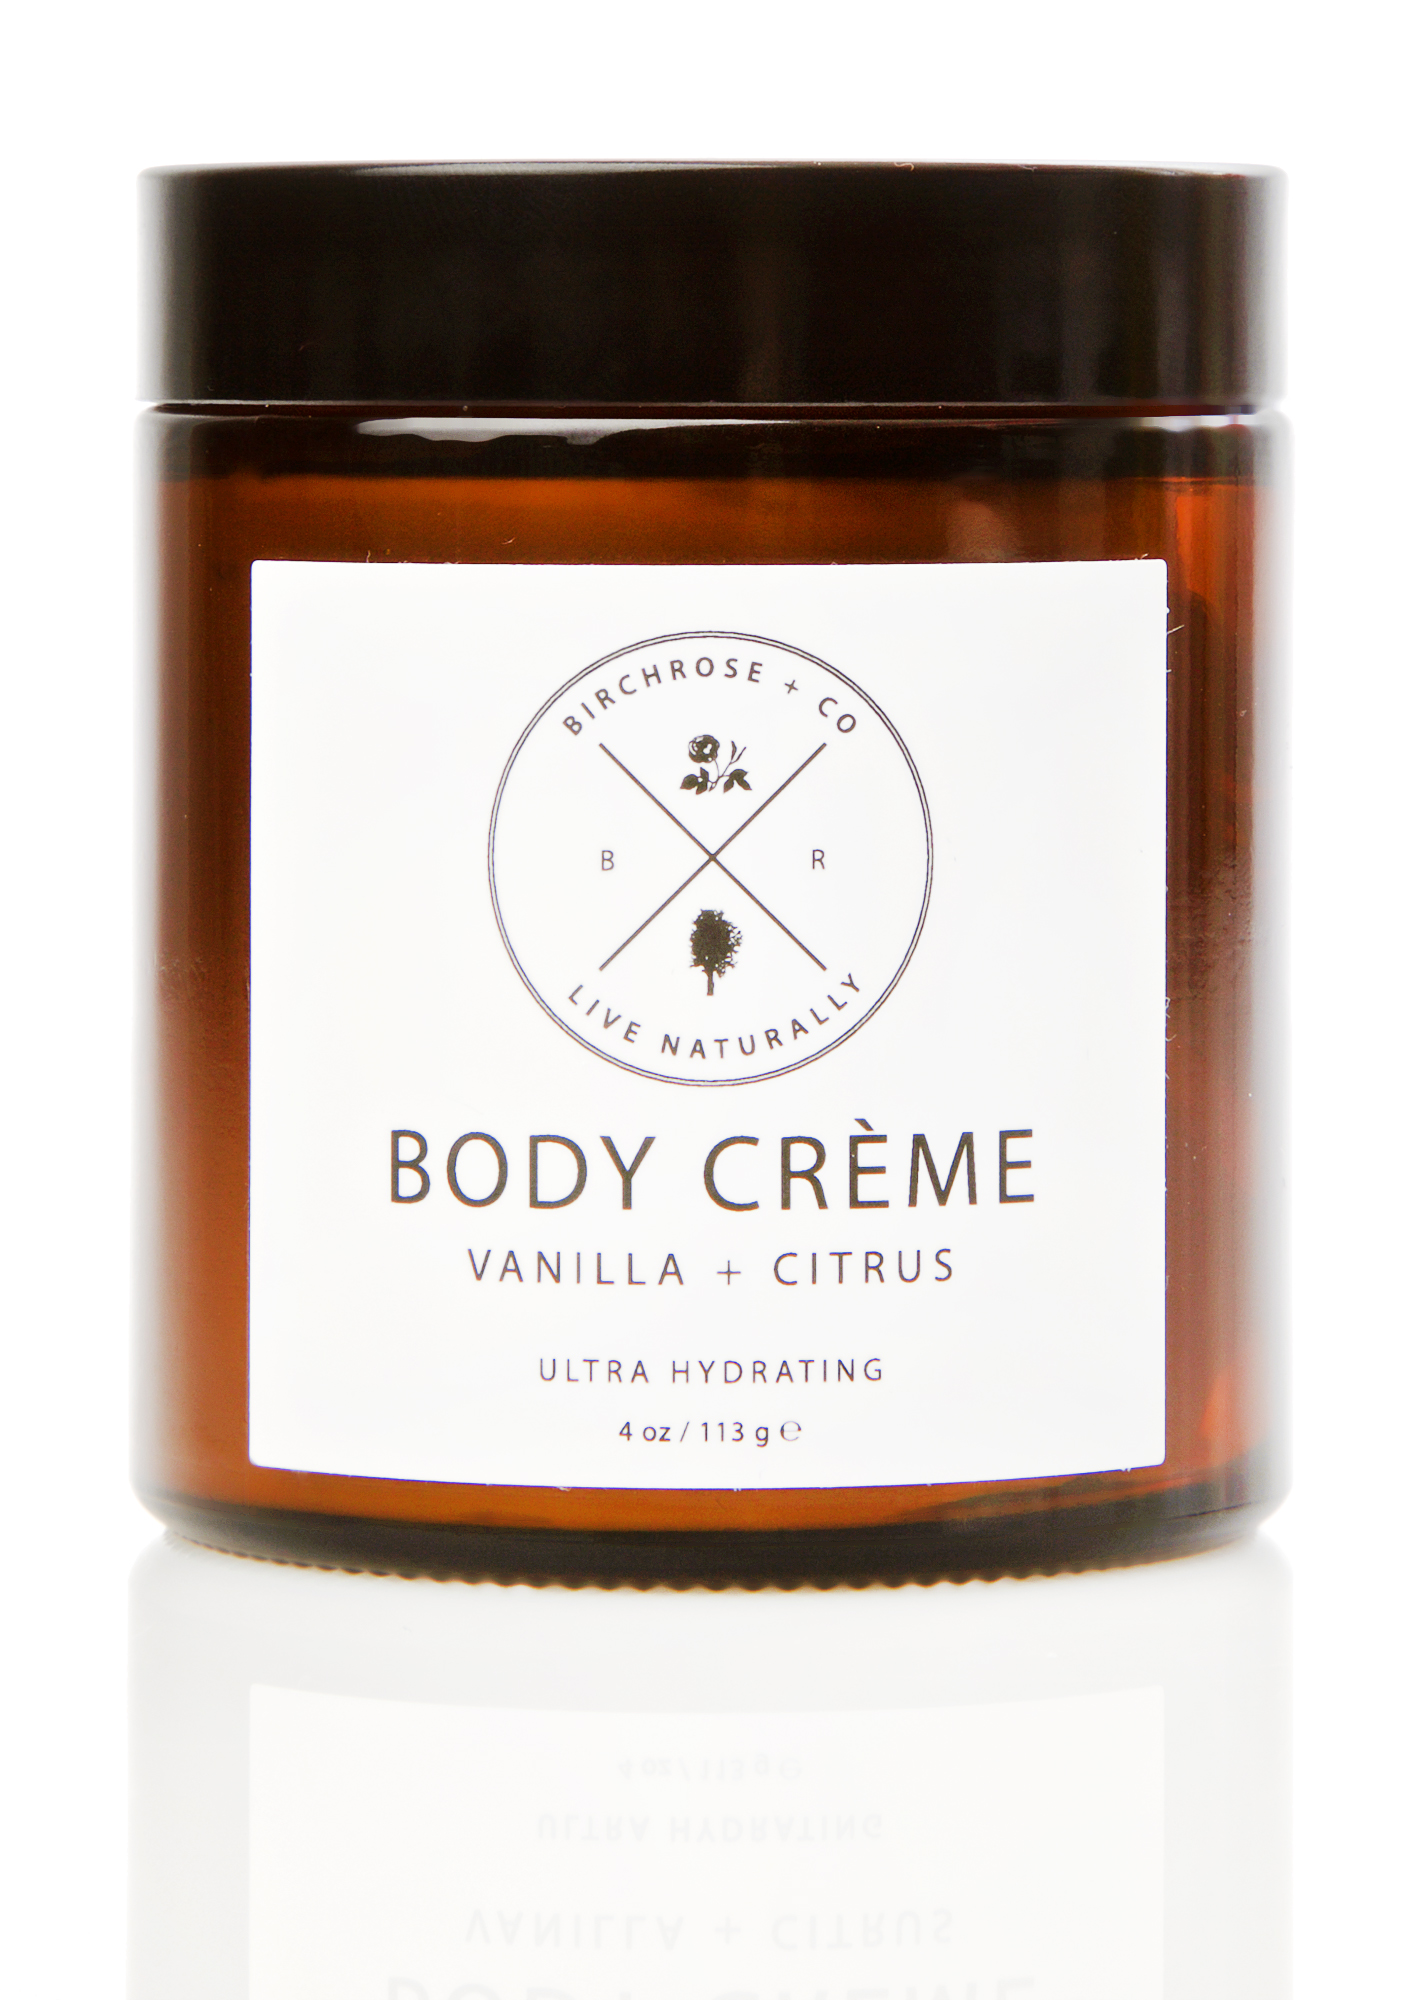 Birchrose + Co Vanilla + Citrus Body Creme